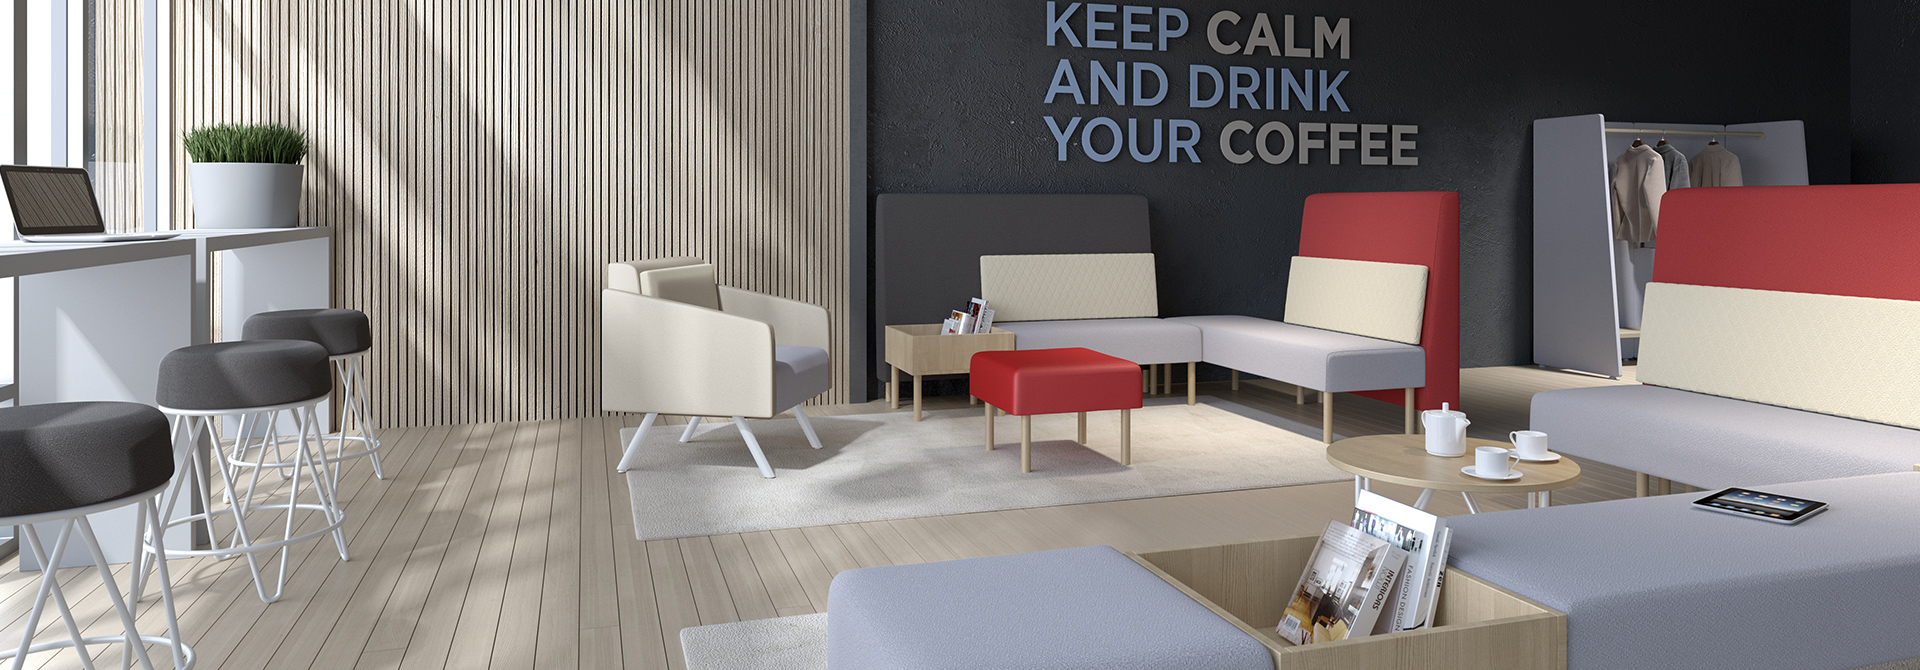 Proteo Panca | Soft Seating - Smart Office | LTContract